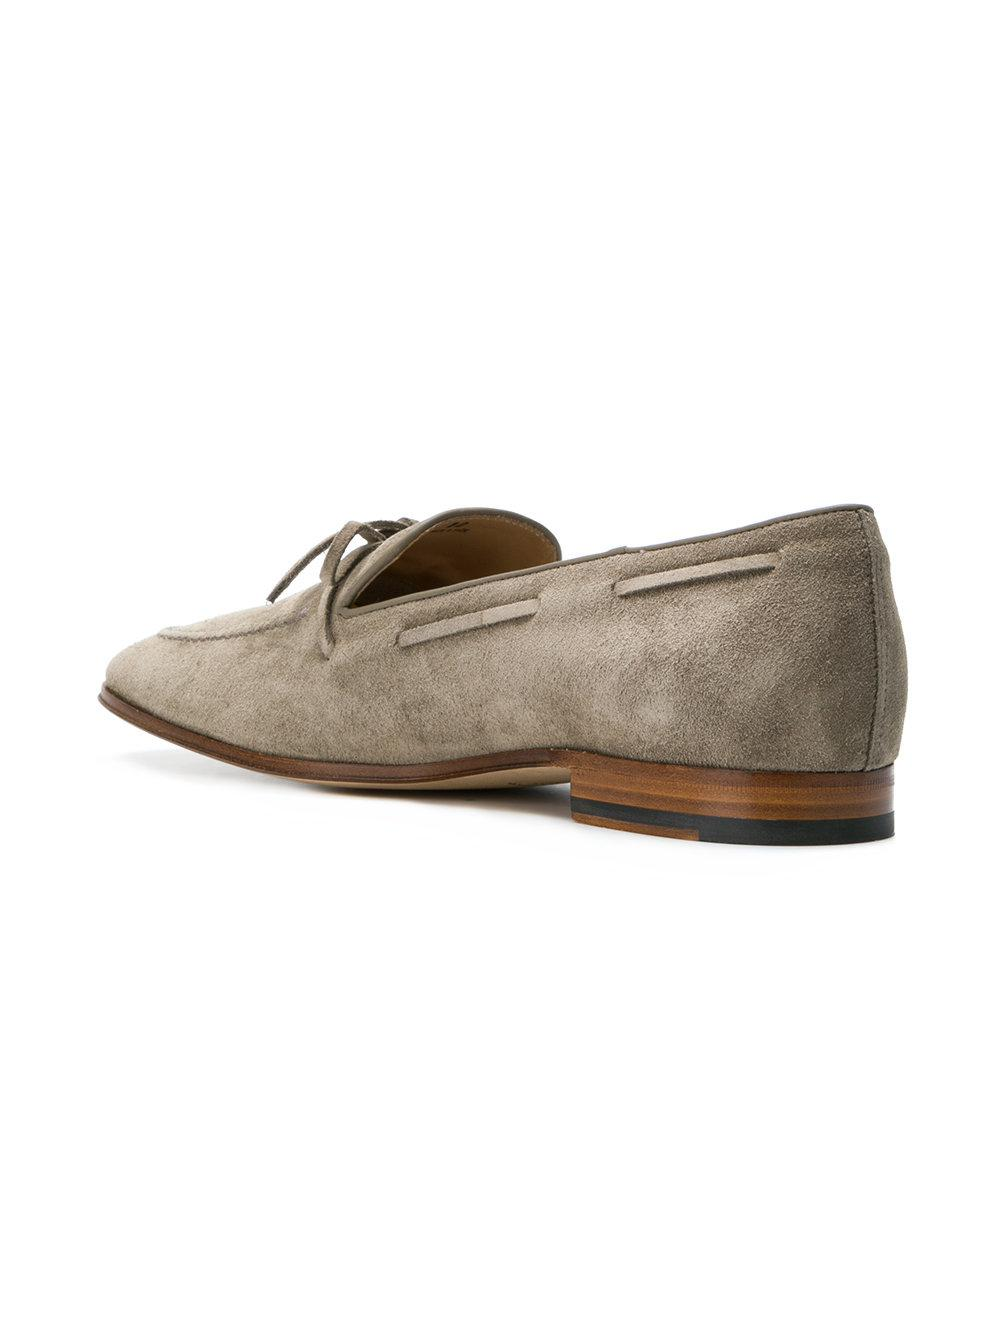 bow detail loafers - Grey Tod's FK03WT9M